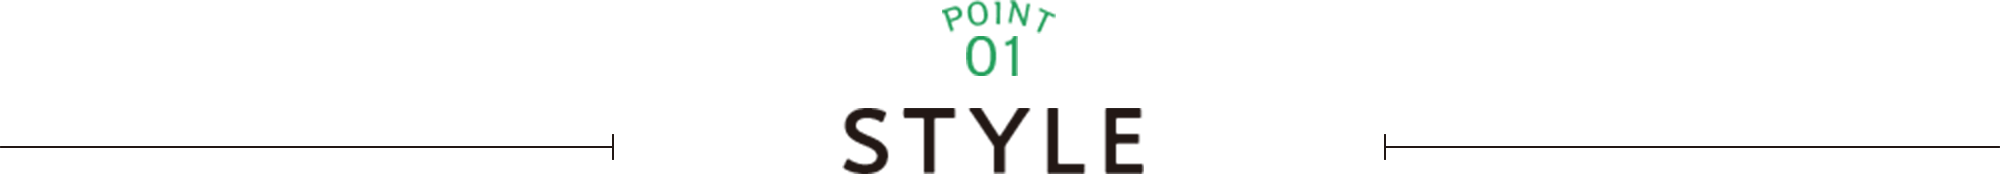 POINT01 STYLE